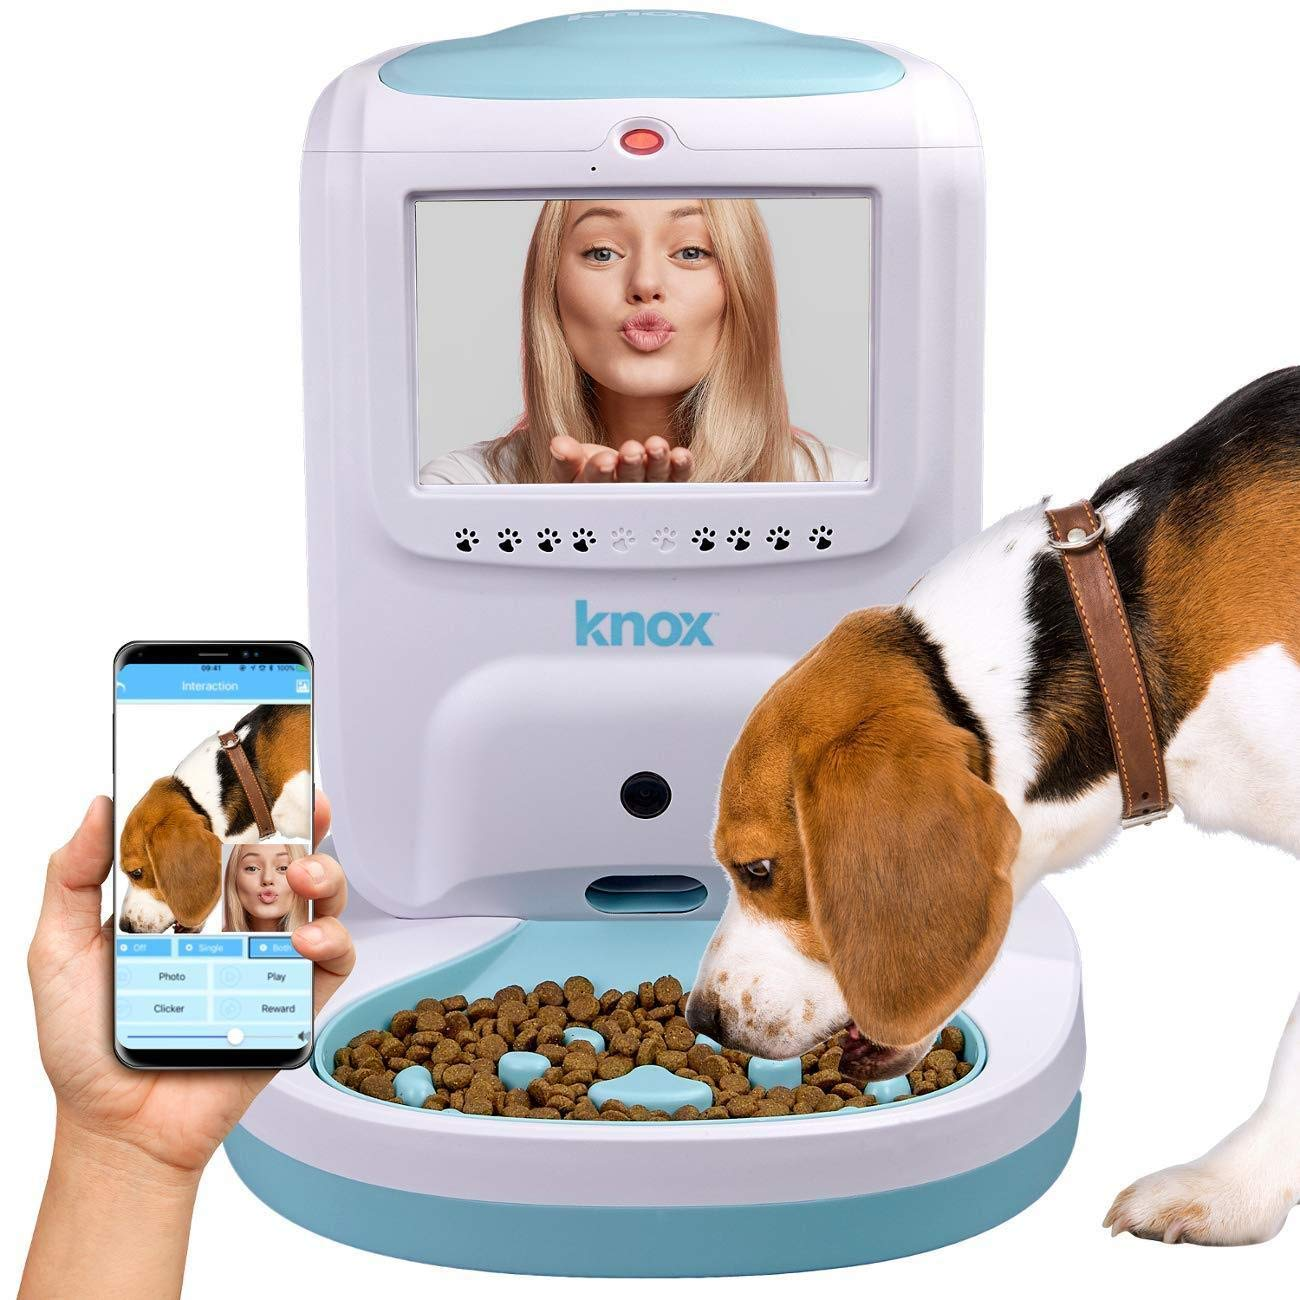 Knox Automatic Pet Feeder With 2 Way Video and Audio Live Interaction and  Recording Electronic Wifi Food and Treat Dispenser for Dogs and Cats -